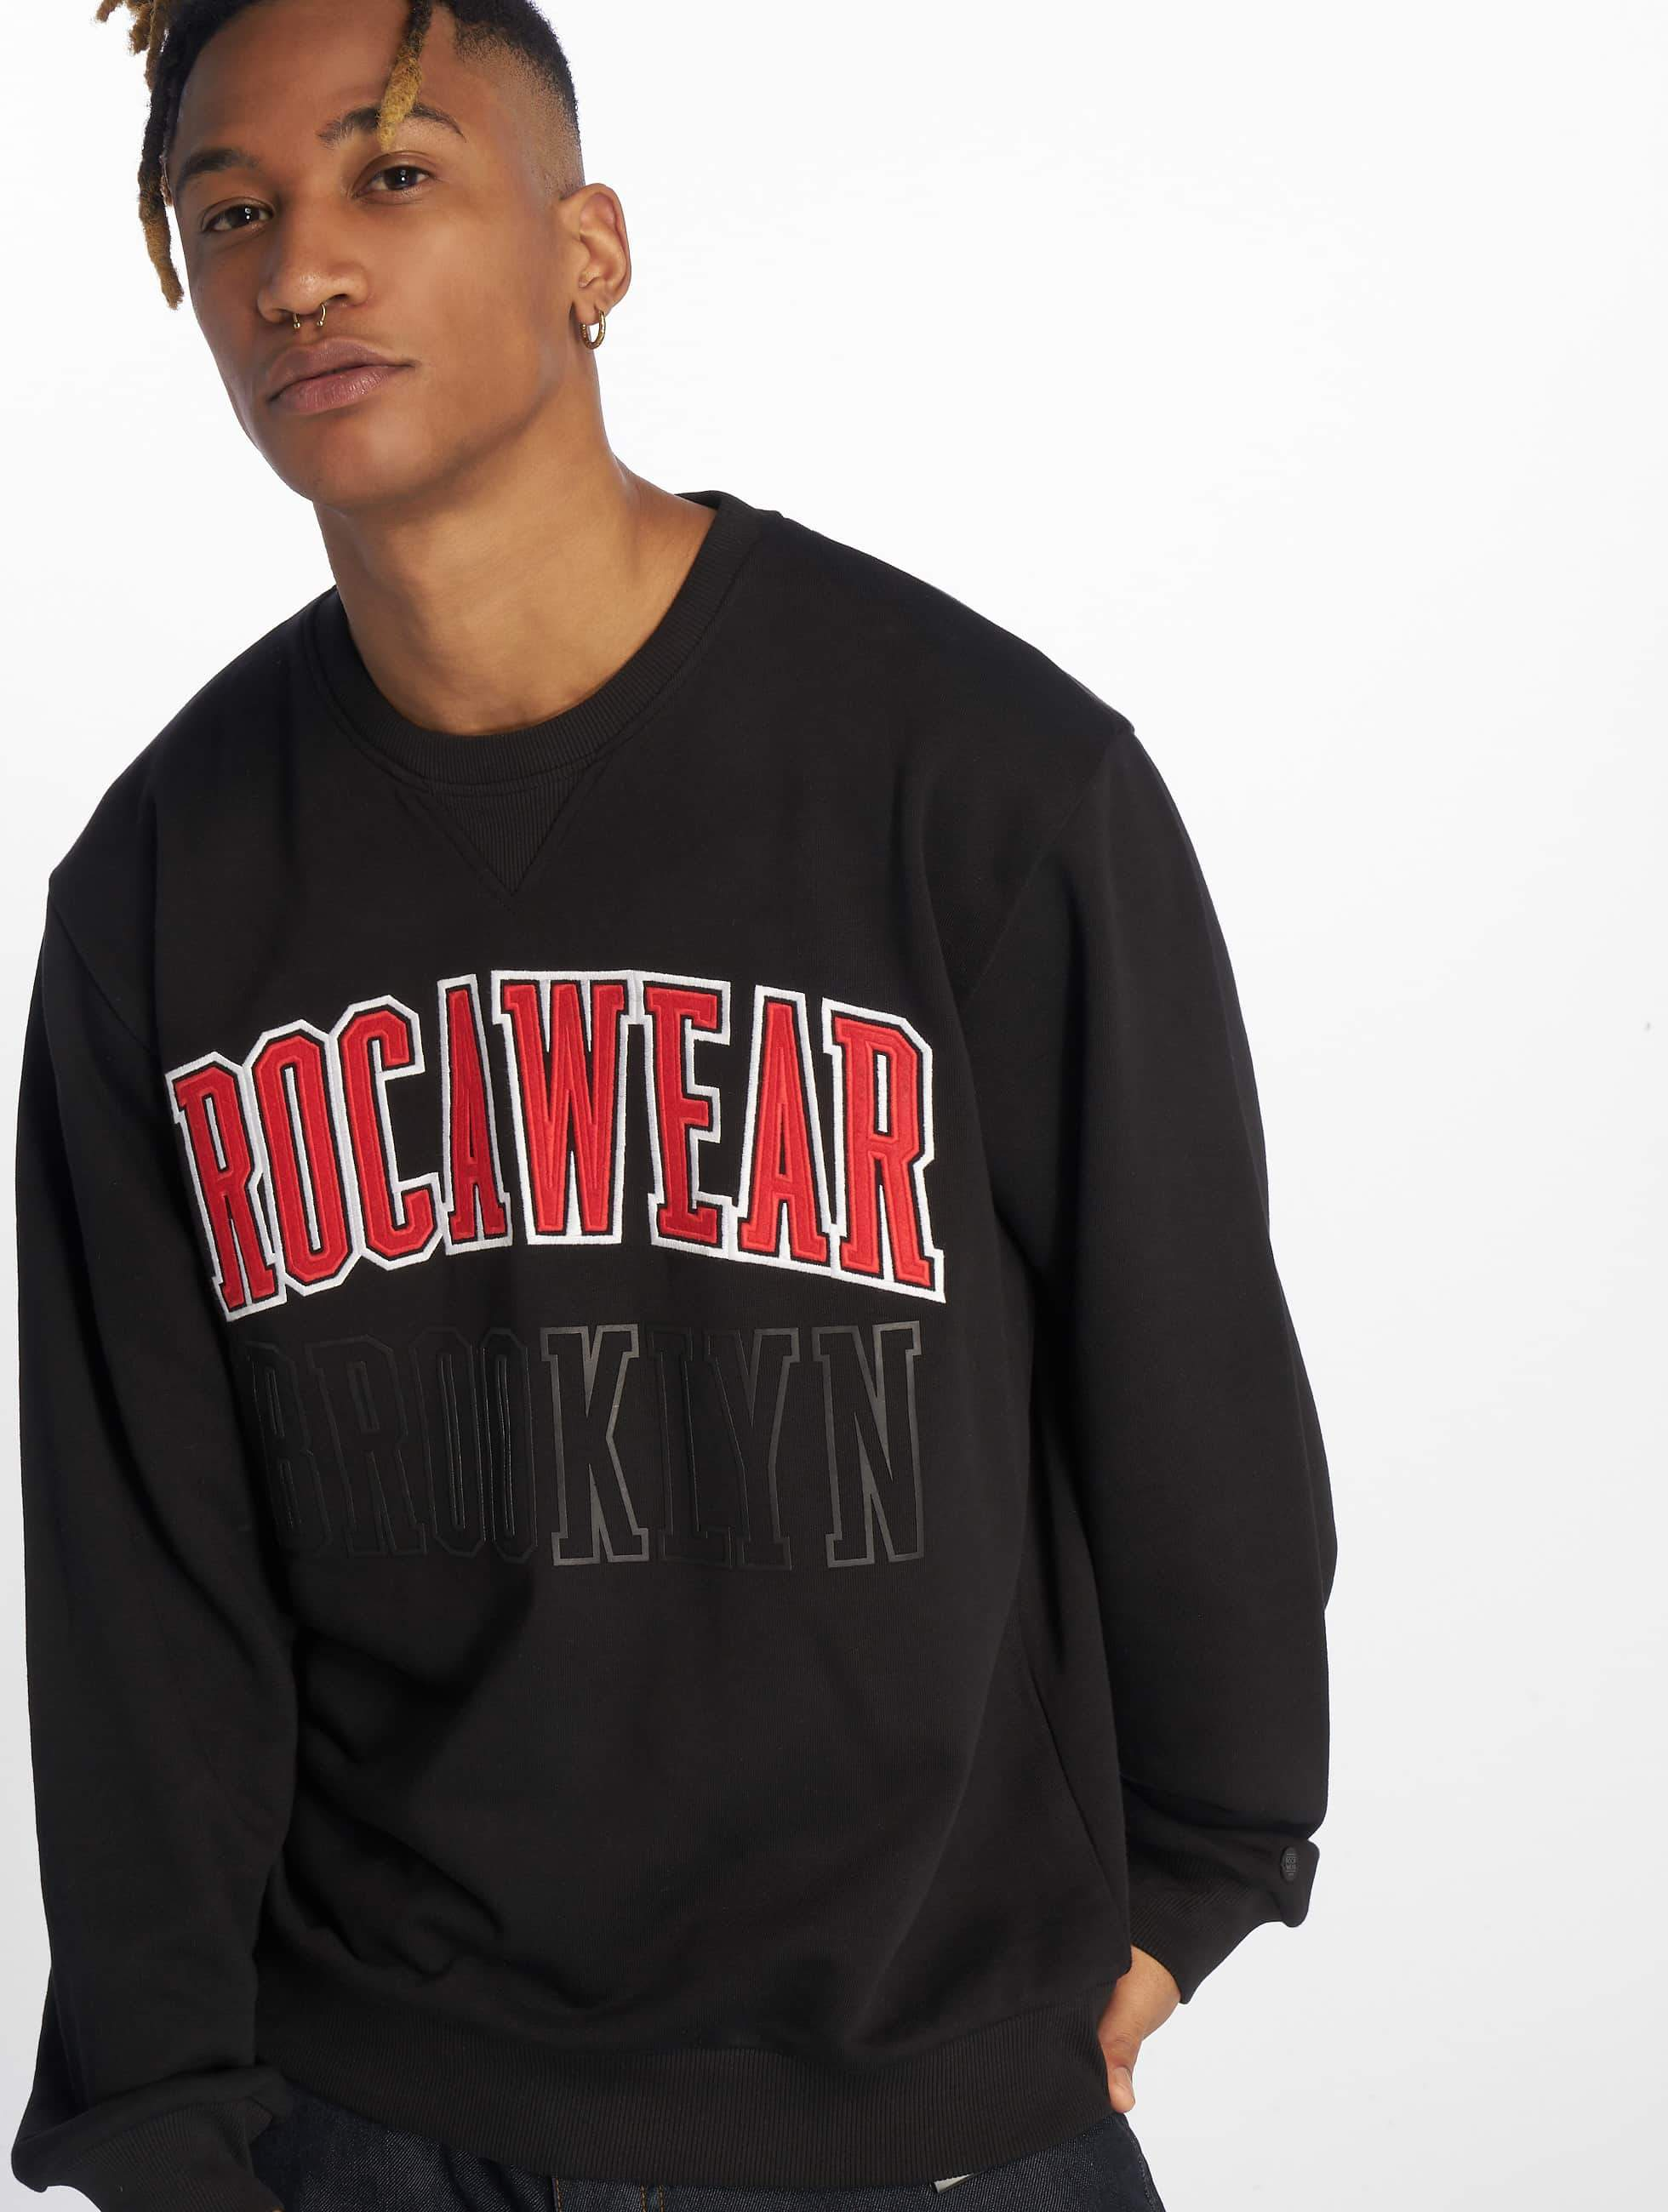 Rocawear / Jumper Brooklyn in black 2XL